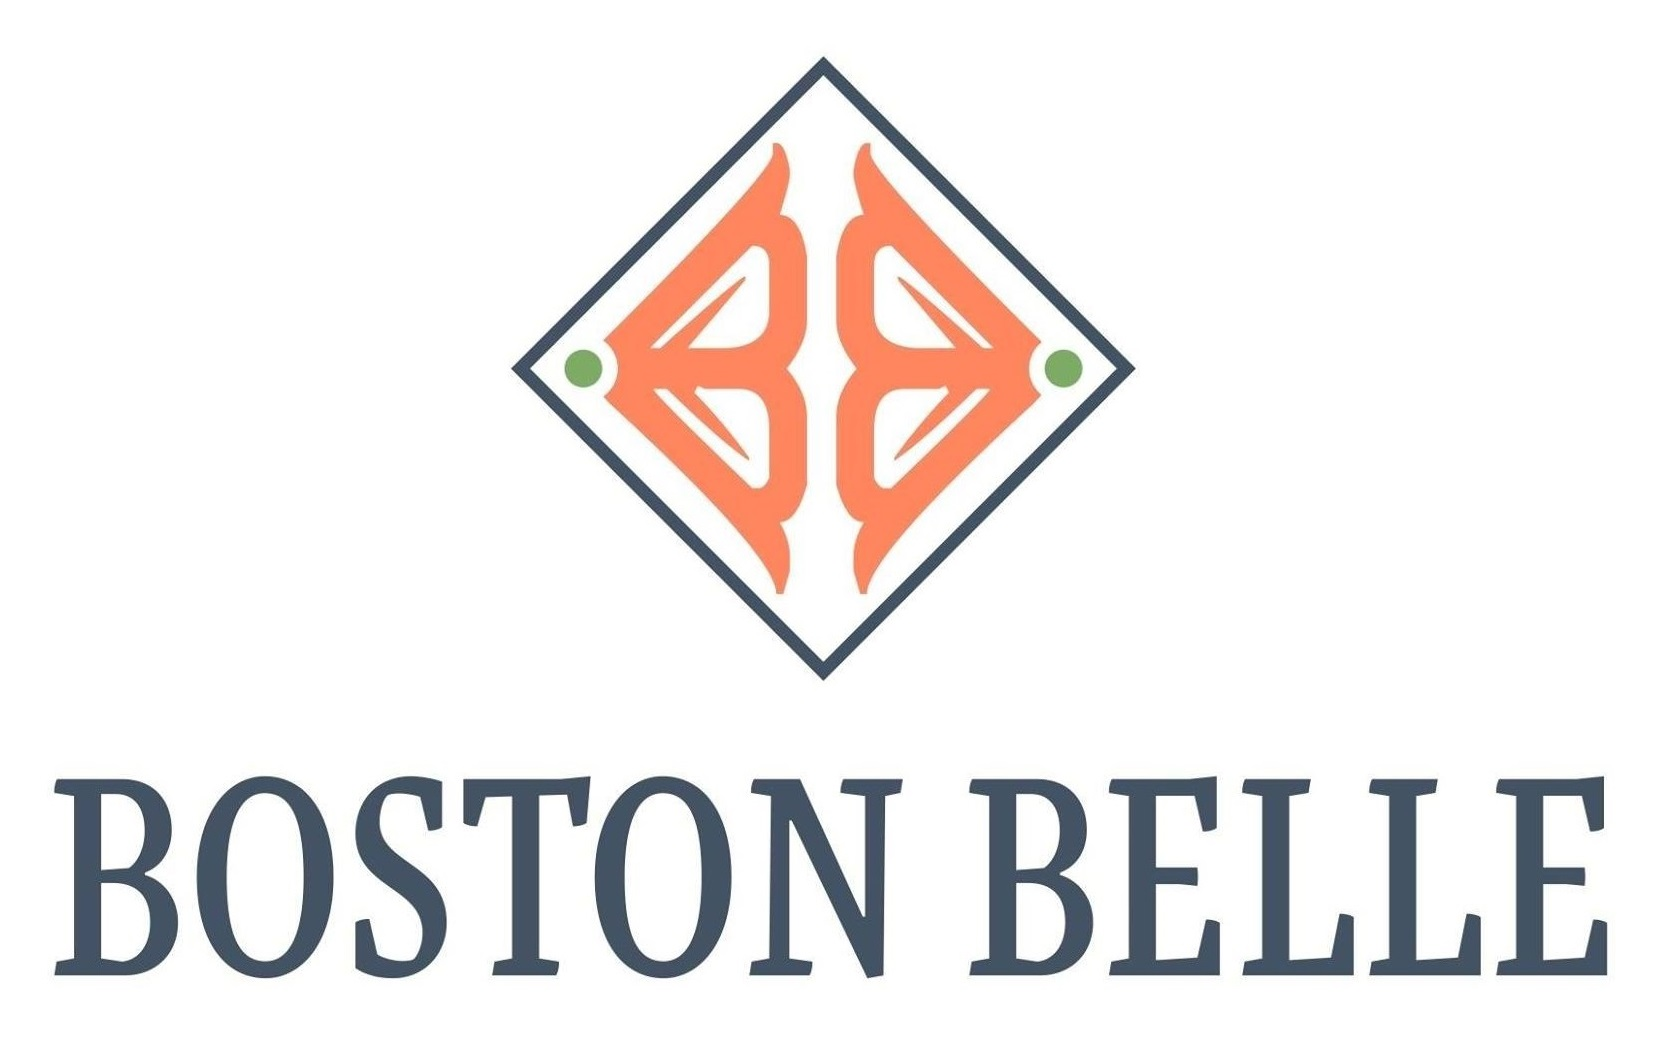 Boston Belle